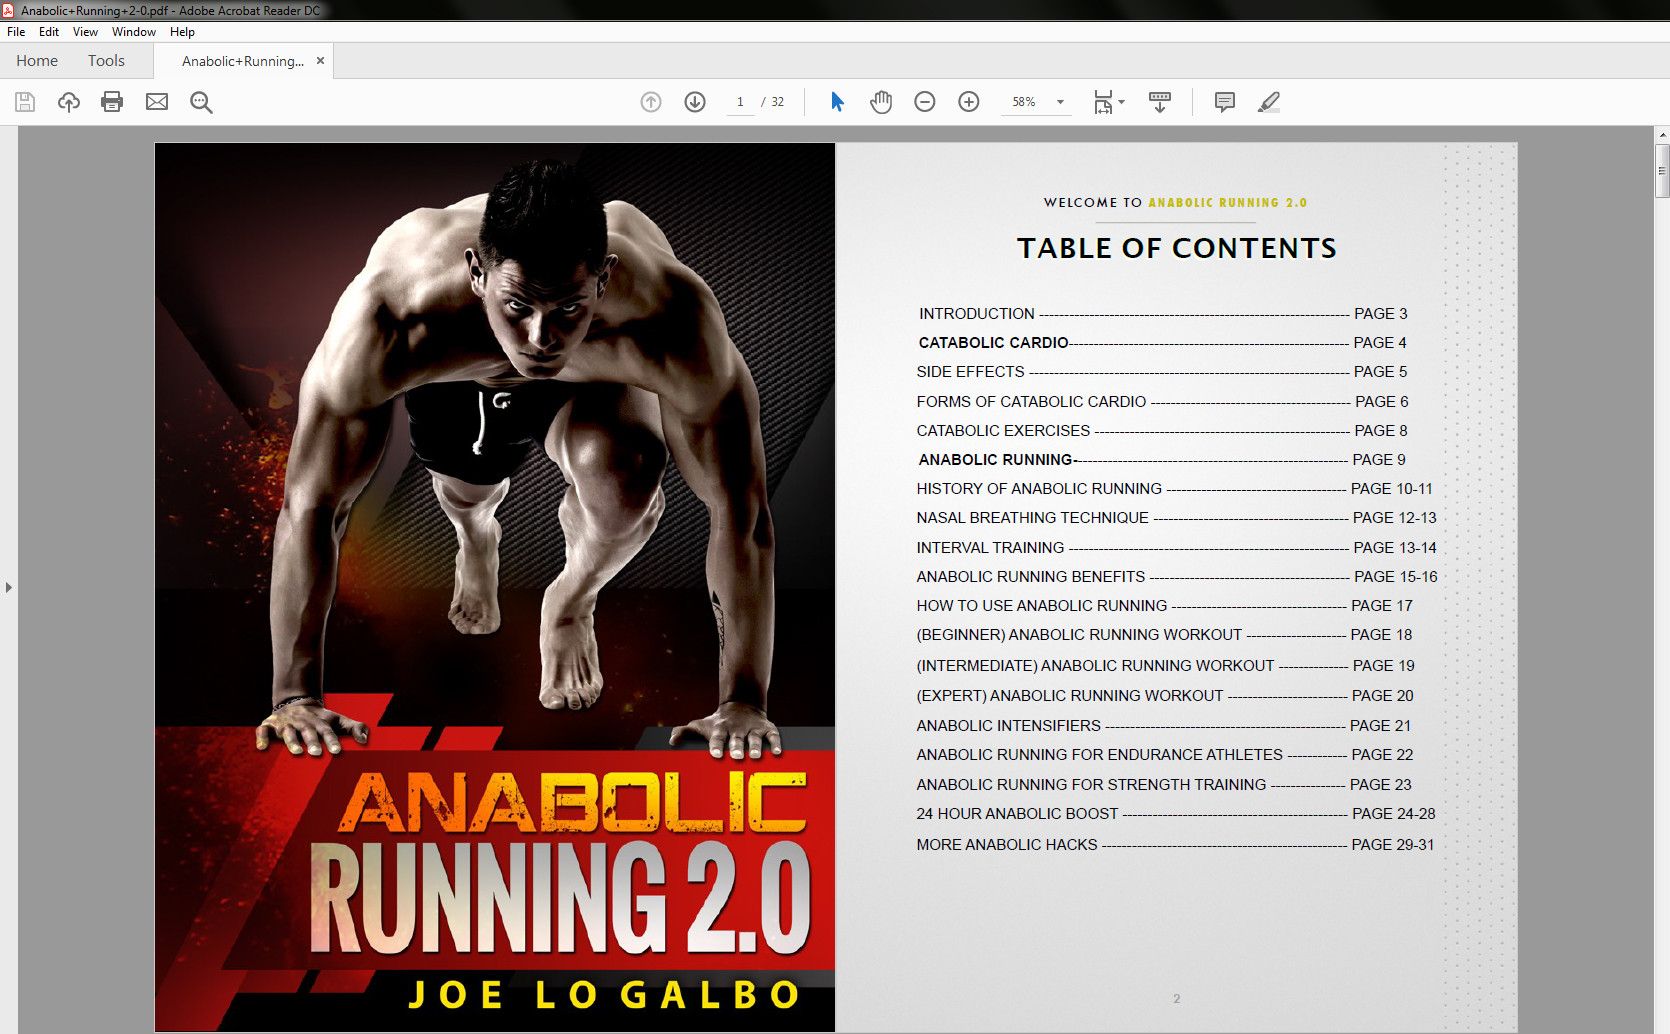 Anabolic Running review- CONTENTS